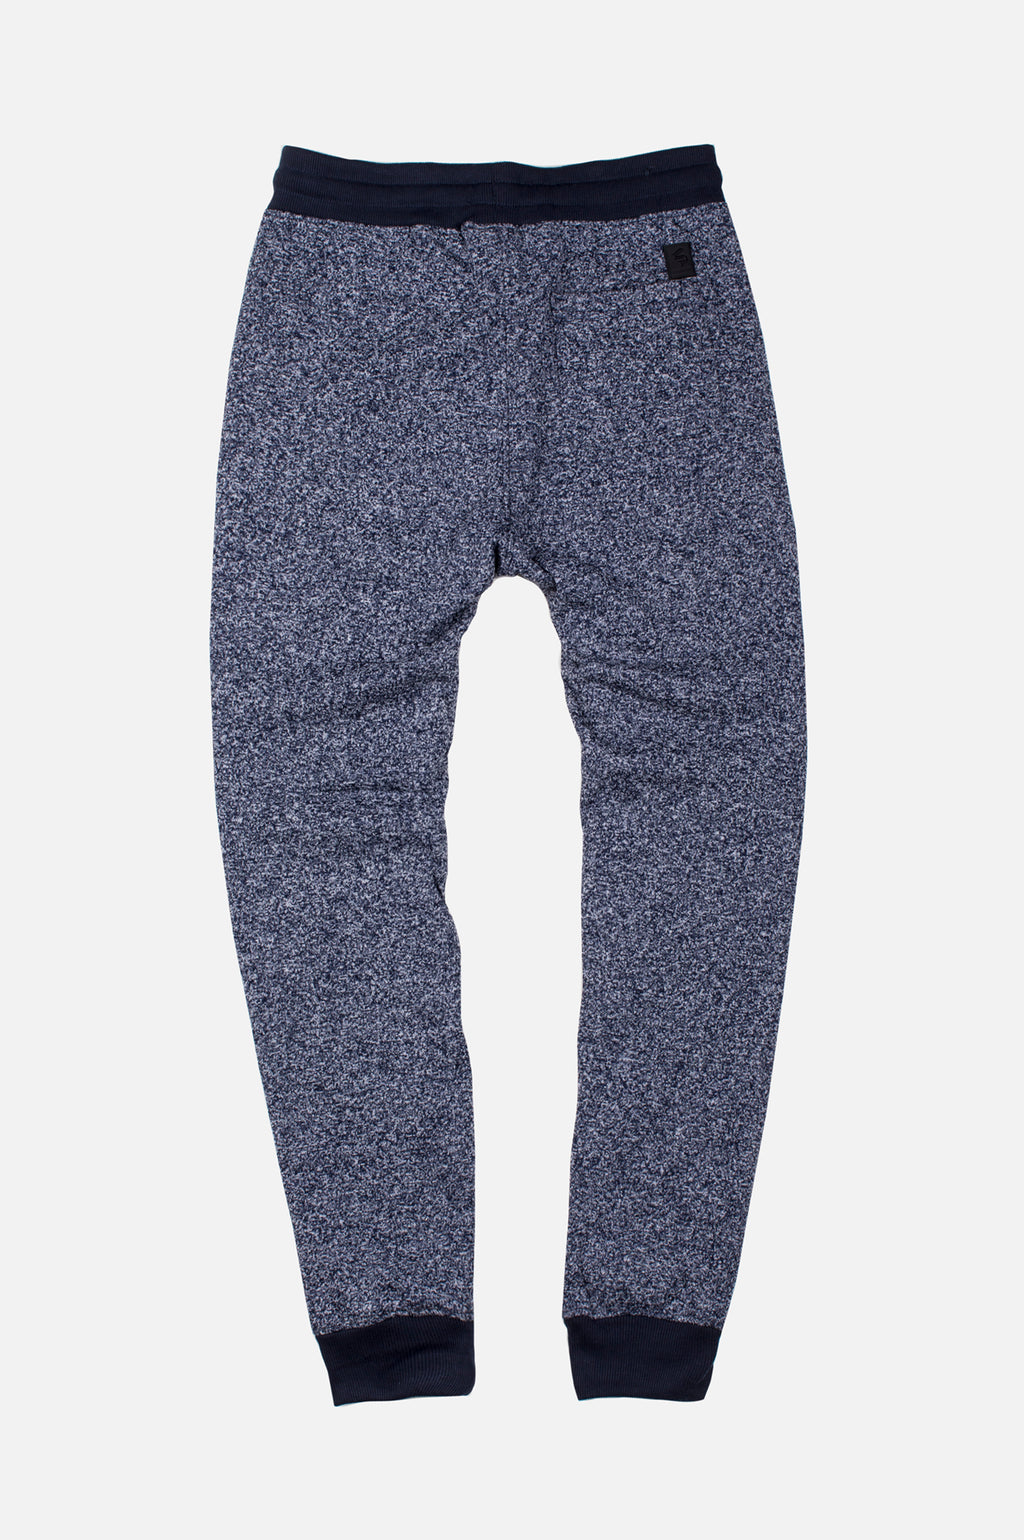 Southpole Mens Basic Fleece Marled Jogger Pants